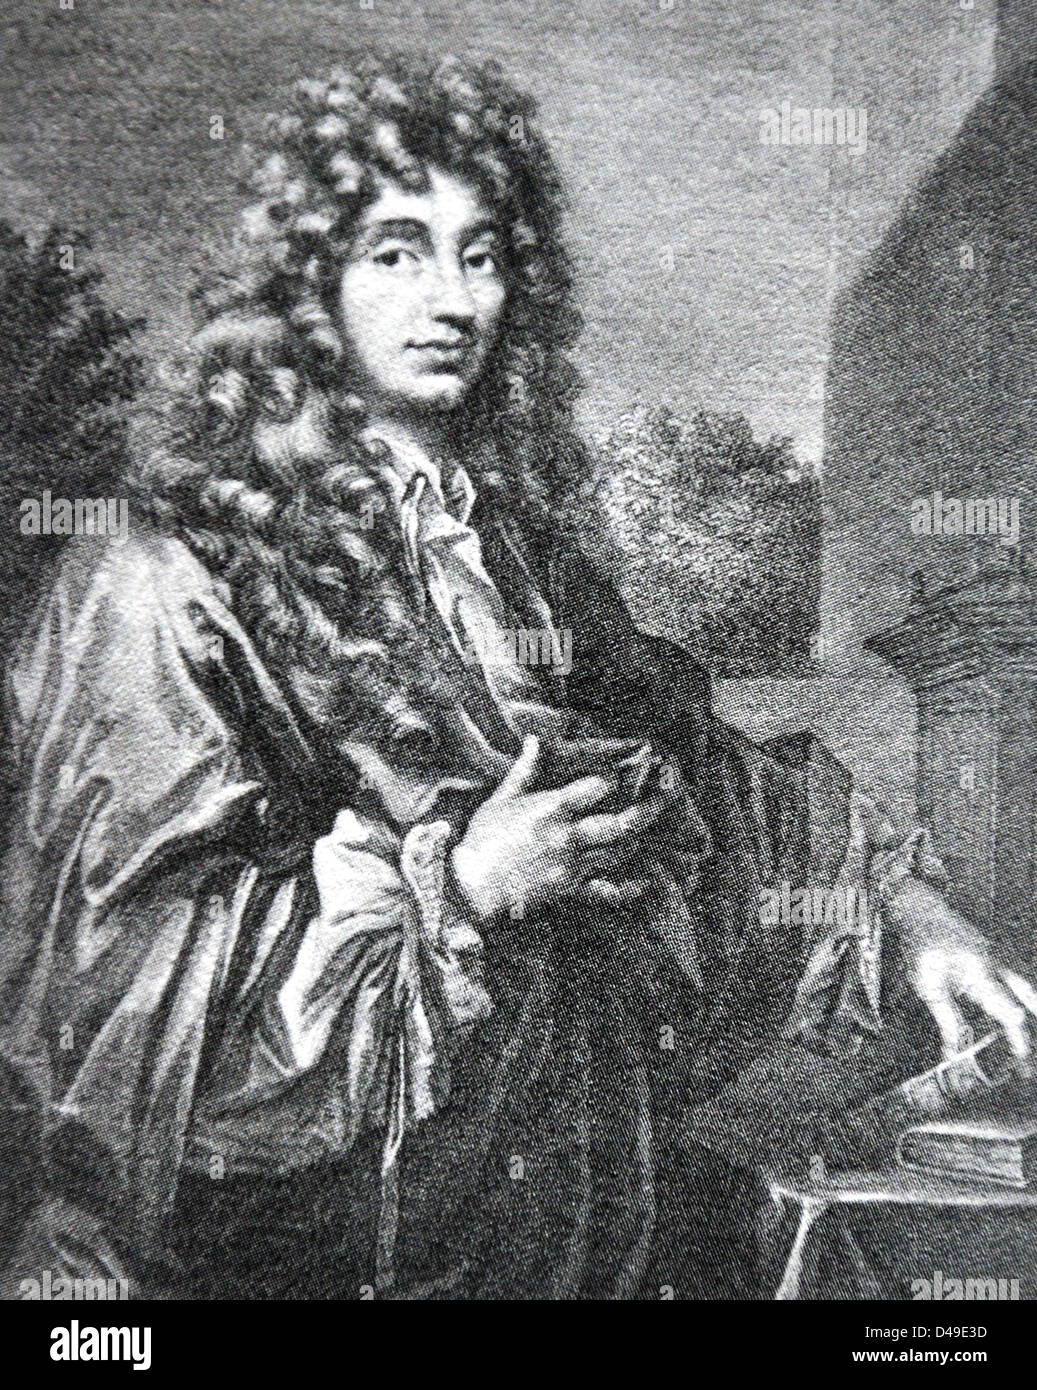 Christiaan Huygens, Dutch mathematician, astronomer, physicist and horologist - Stock Image